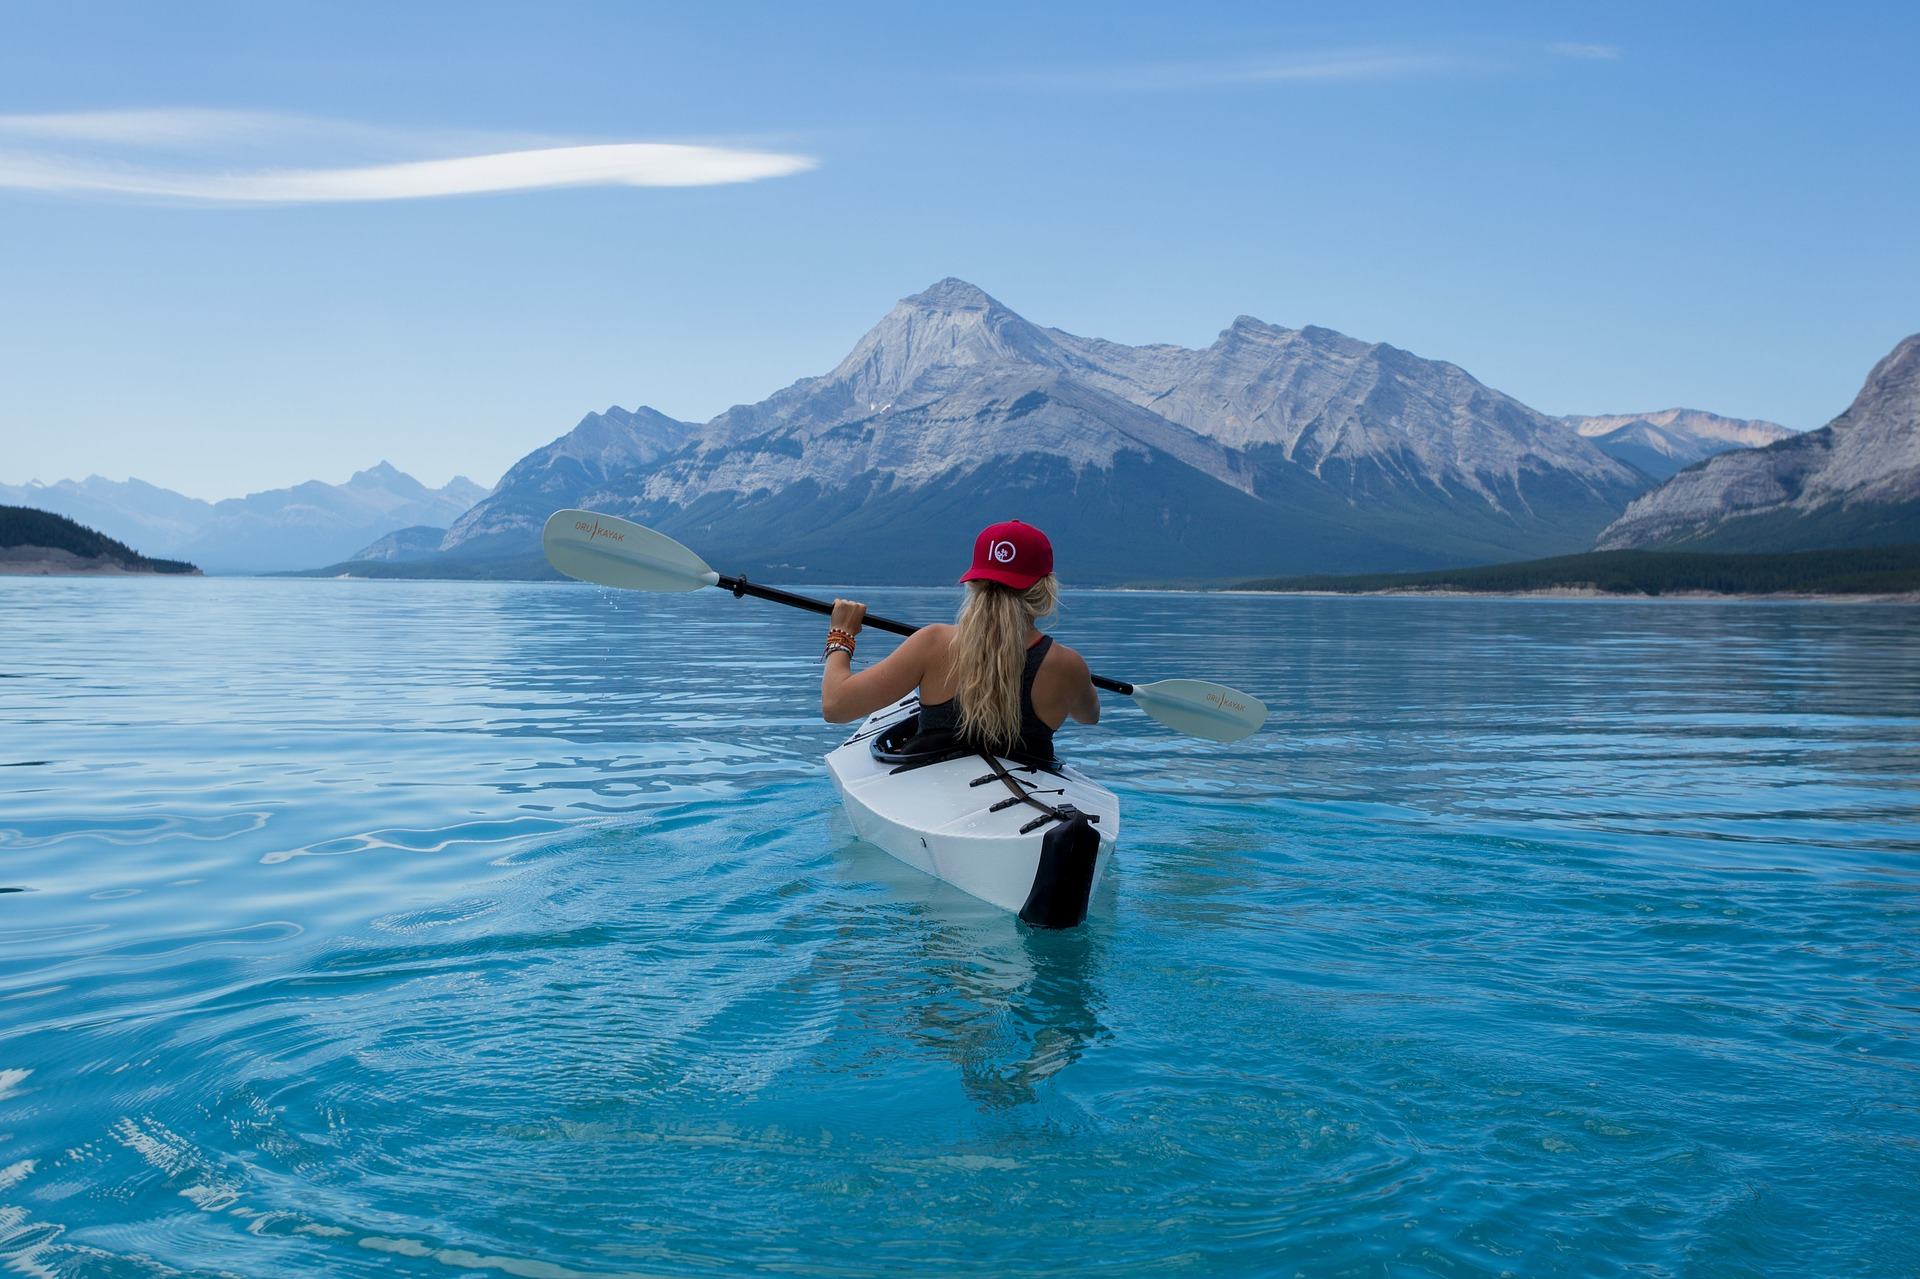 Image: girl paddling in scenic lake with mountains